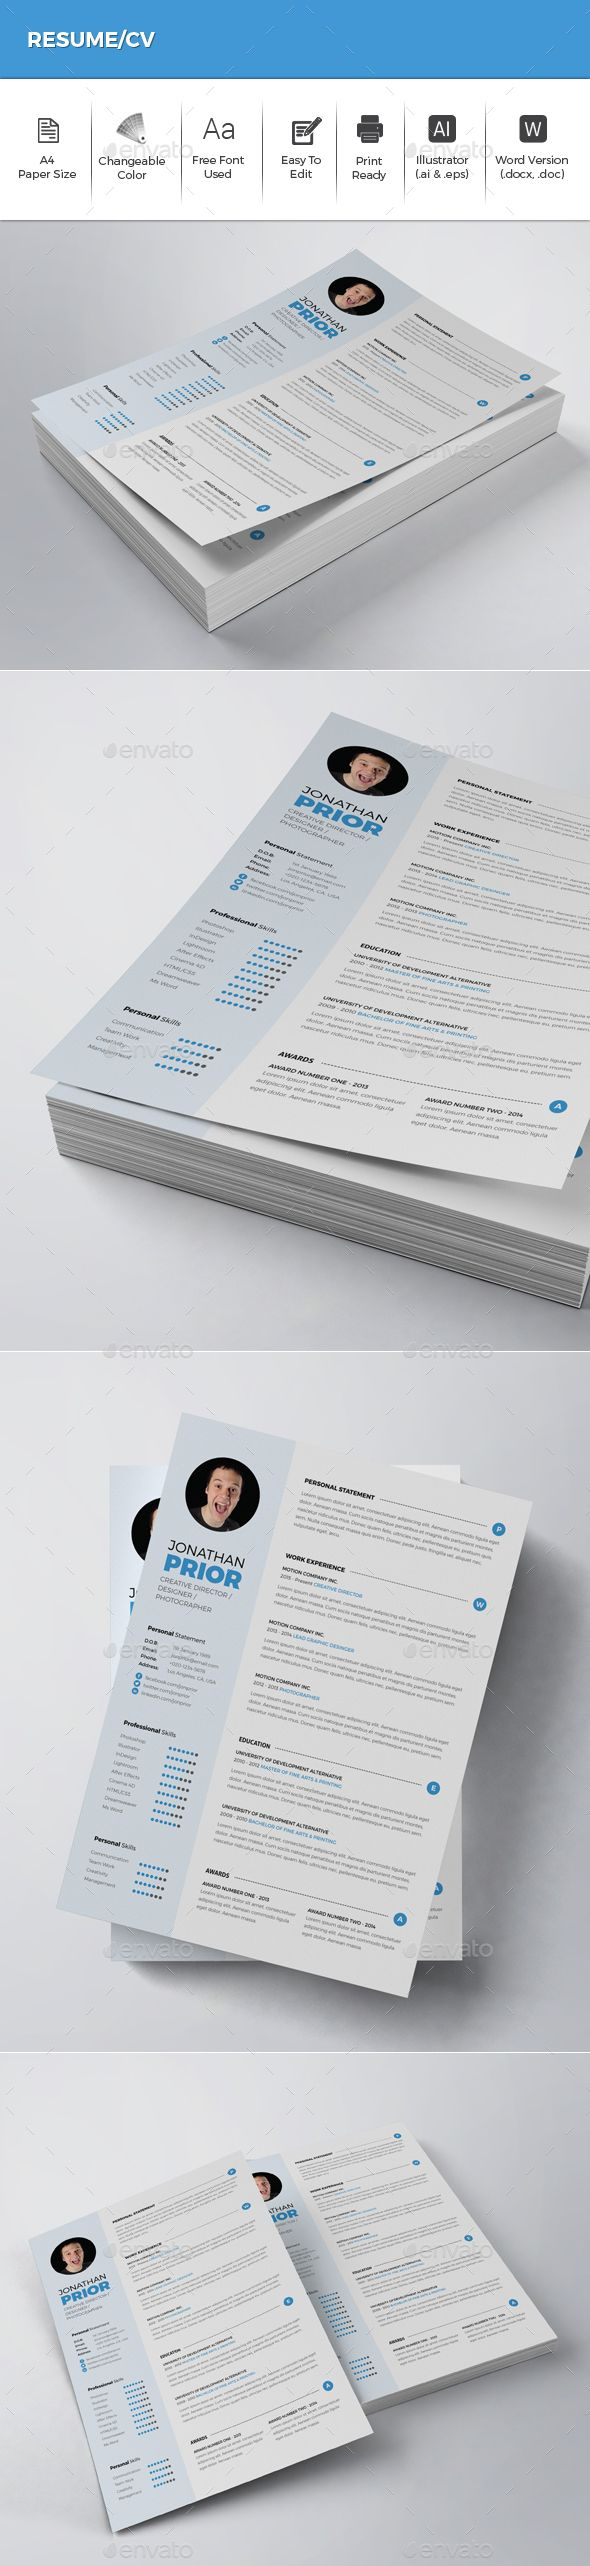 364 best CV / MODELOS images on Pinterest | Resume, Resume design ...